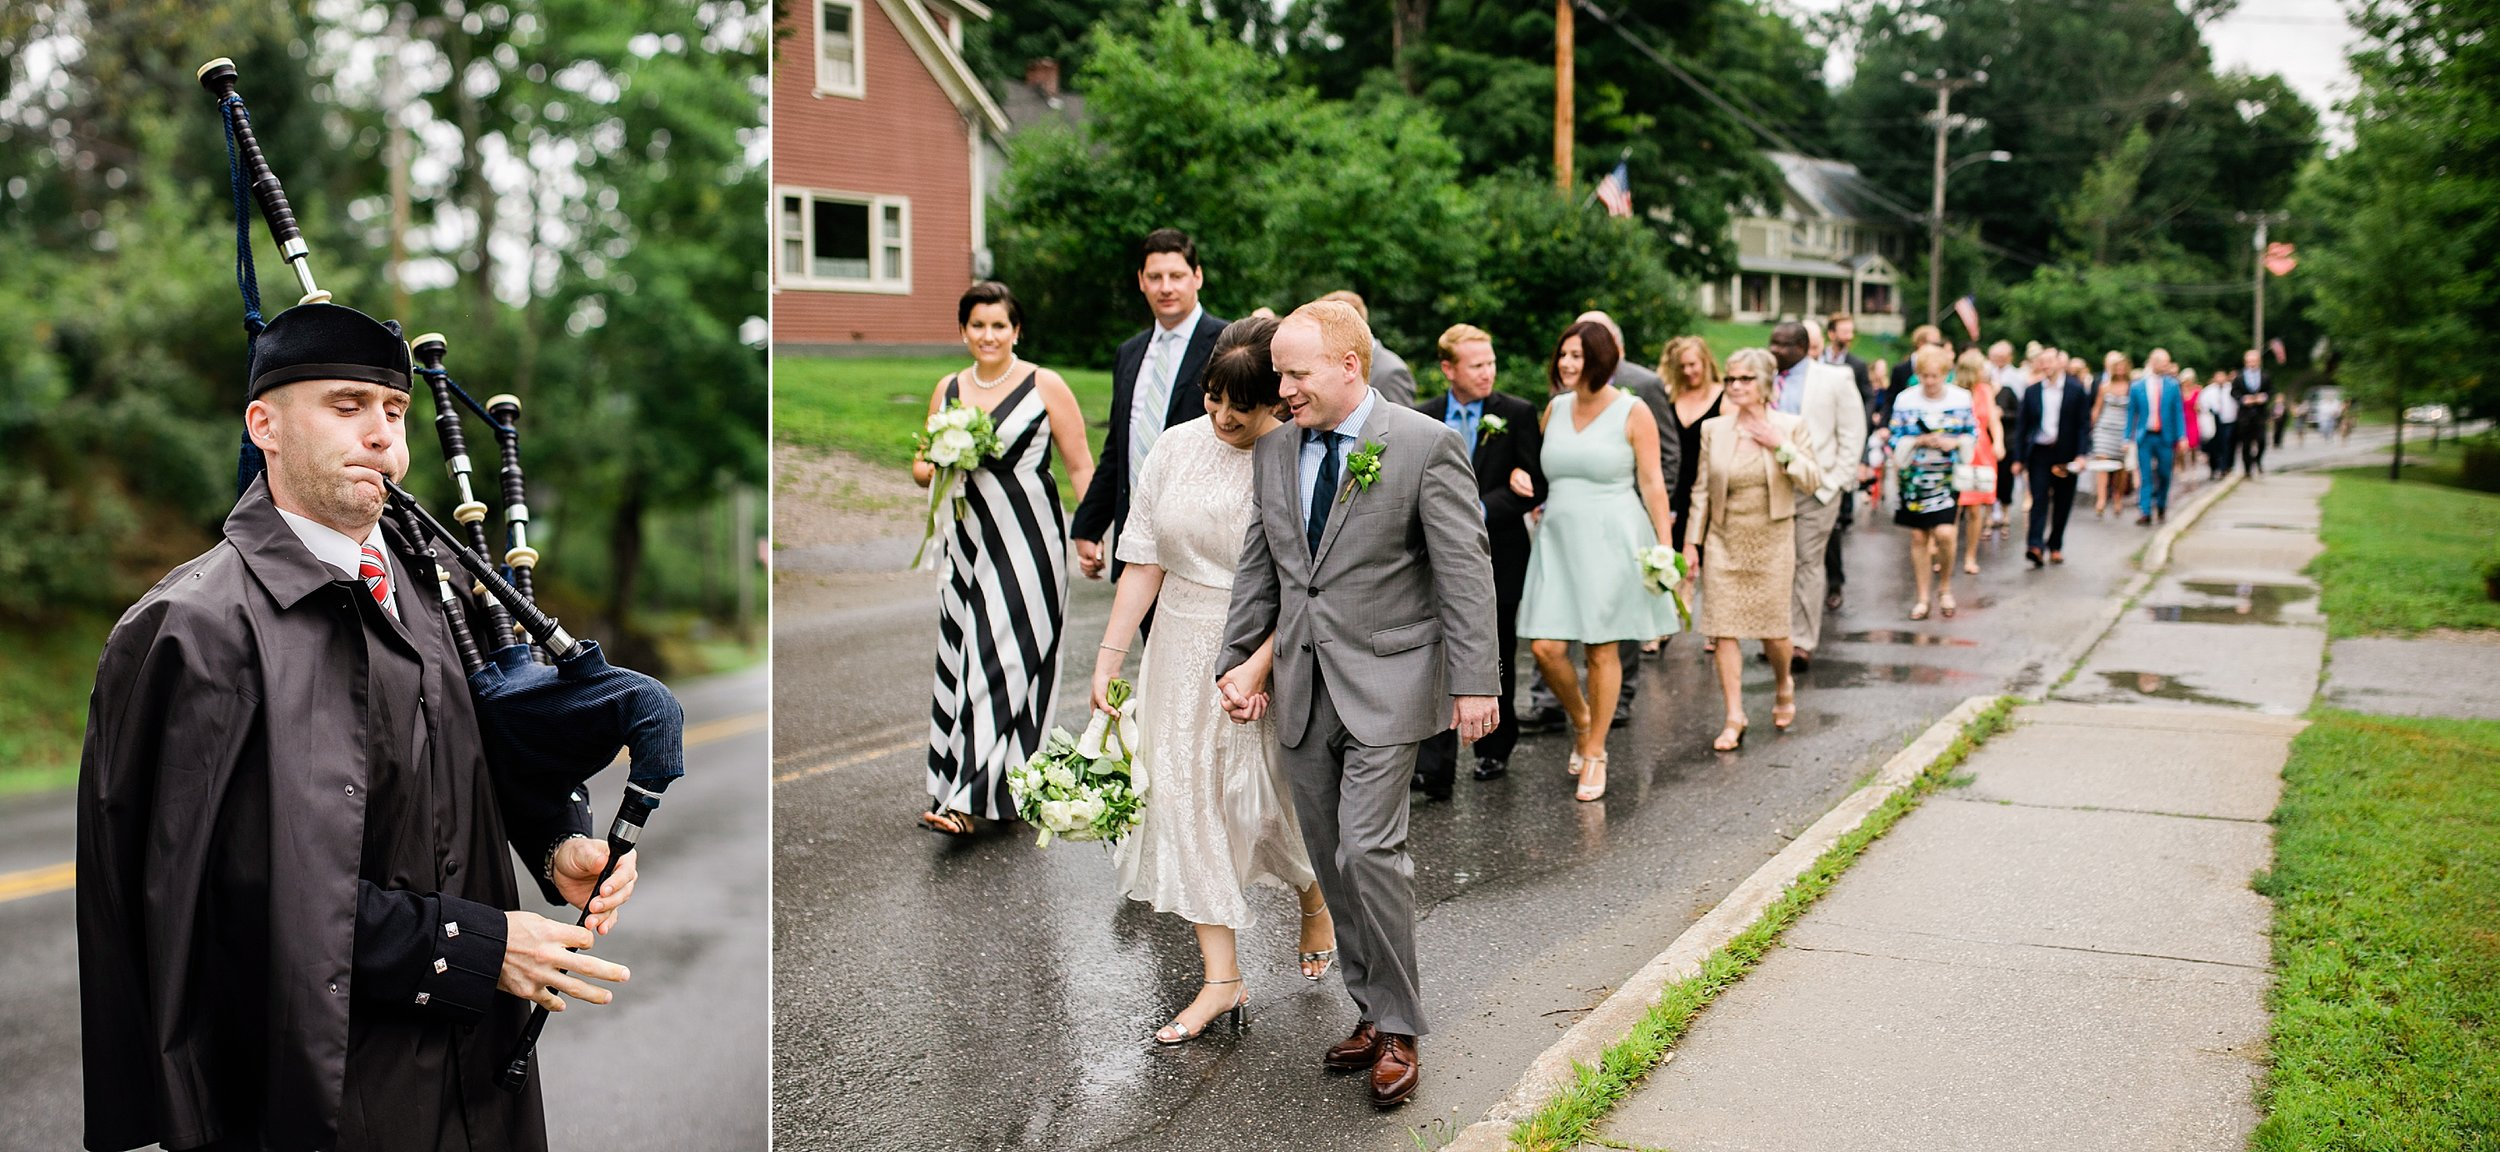 036-los-angeles-wedding-photography-todd-danforth-vermont.jpg